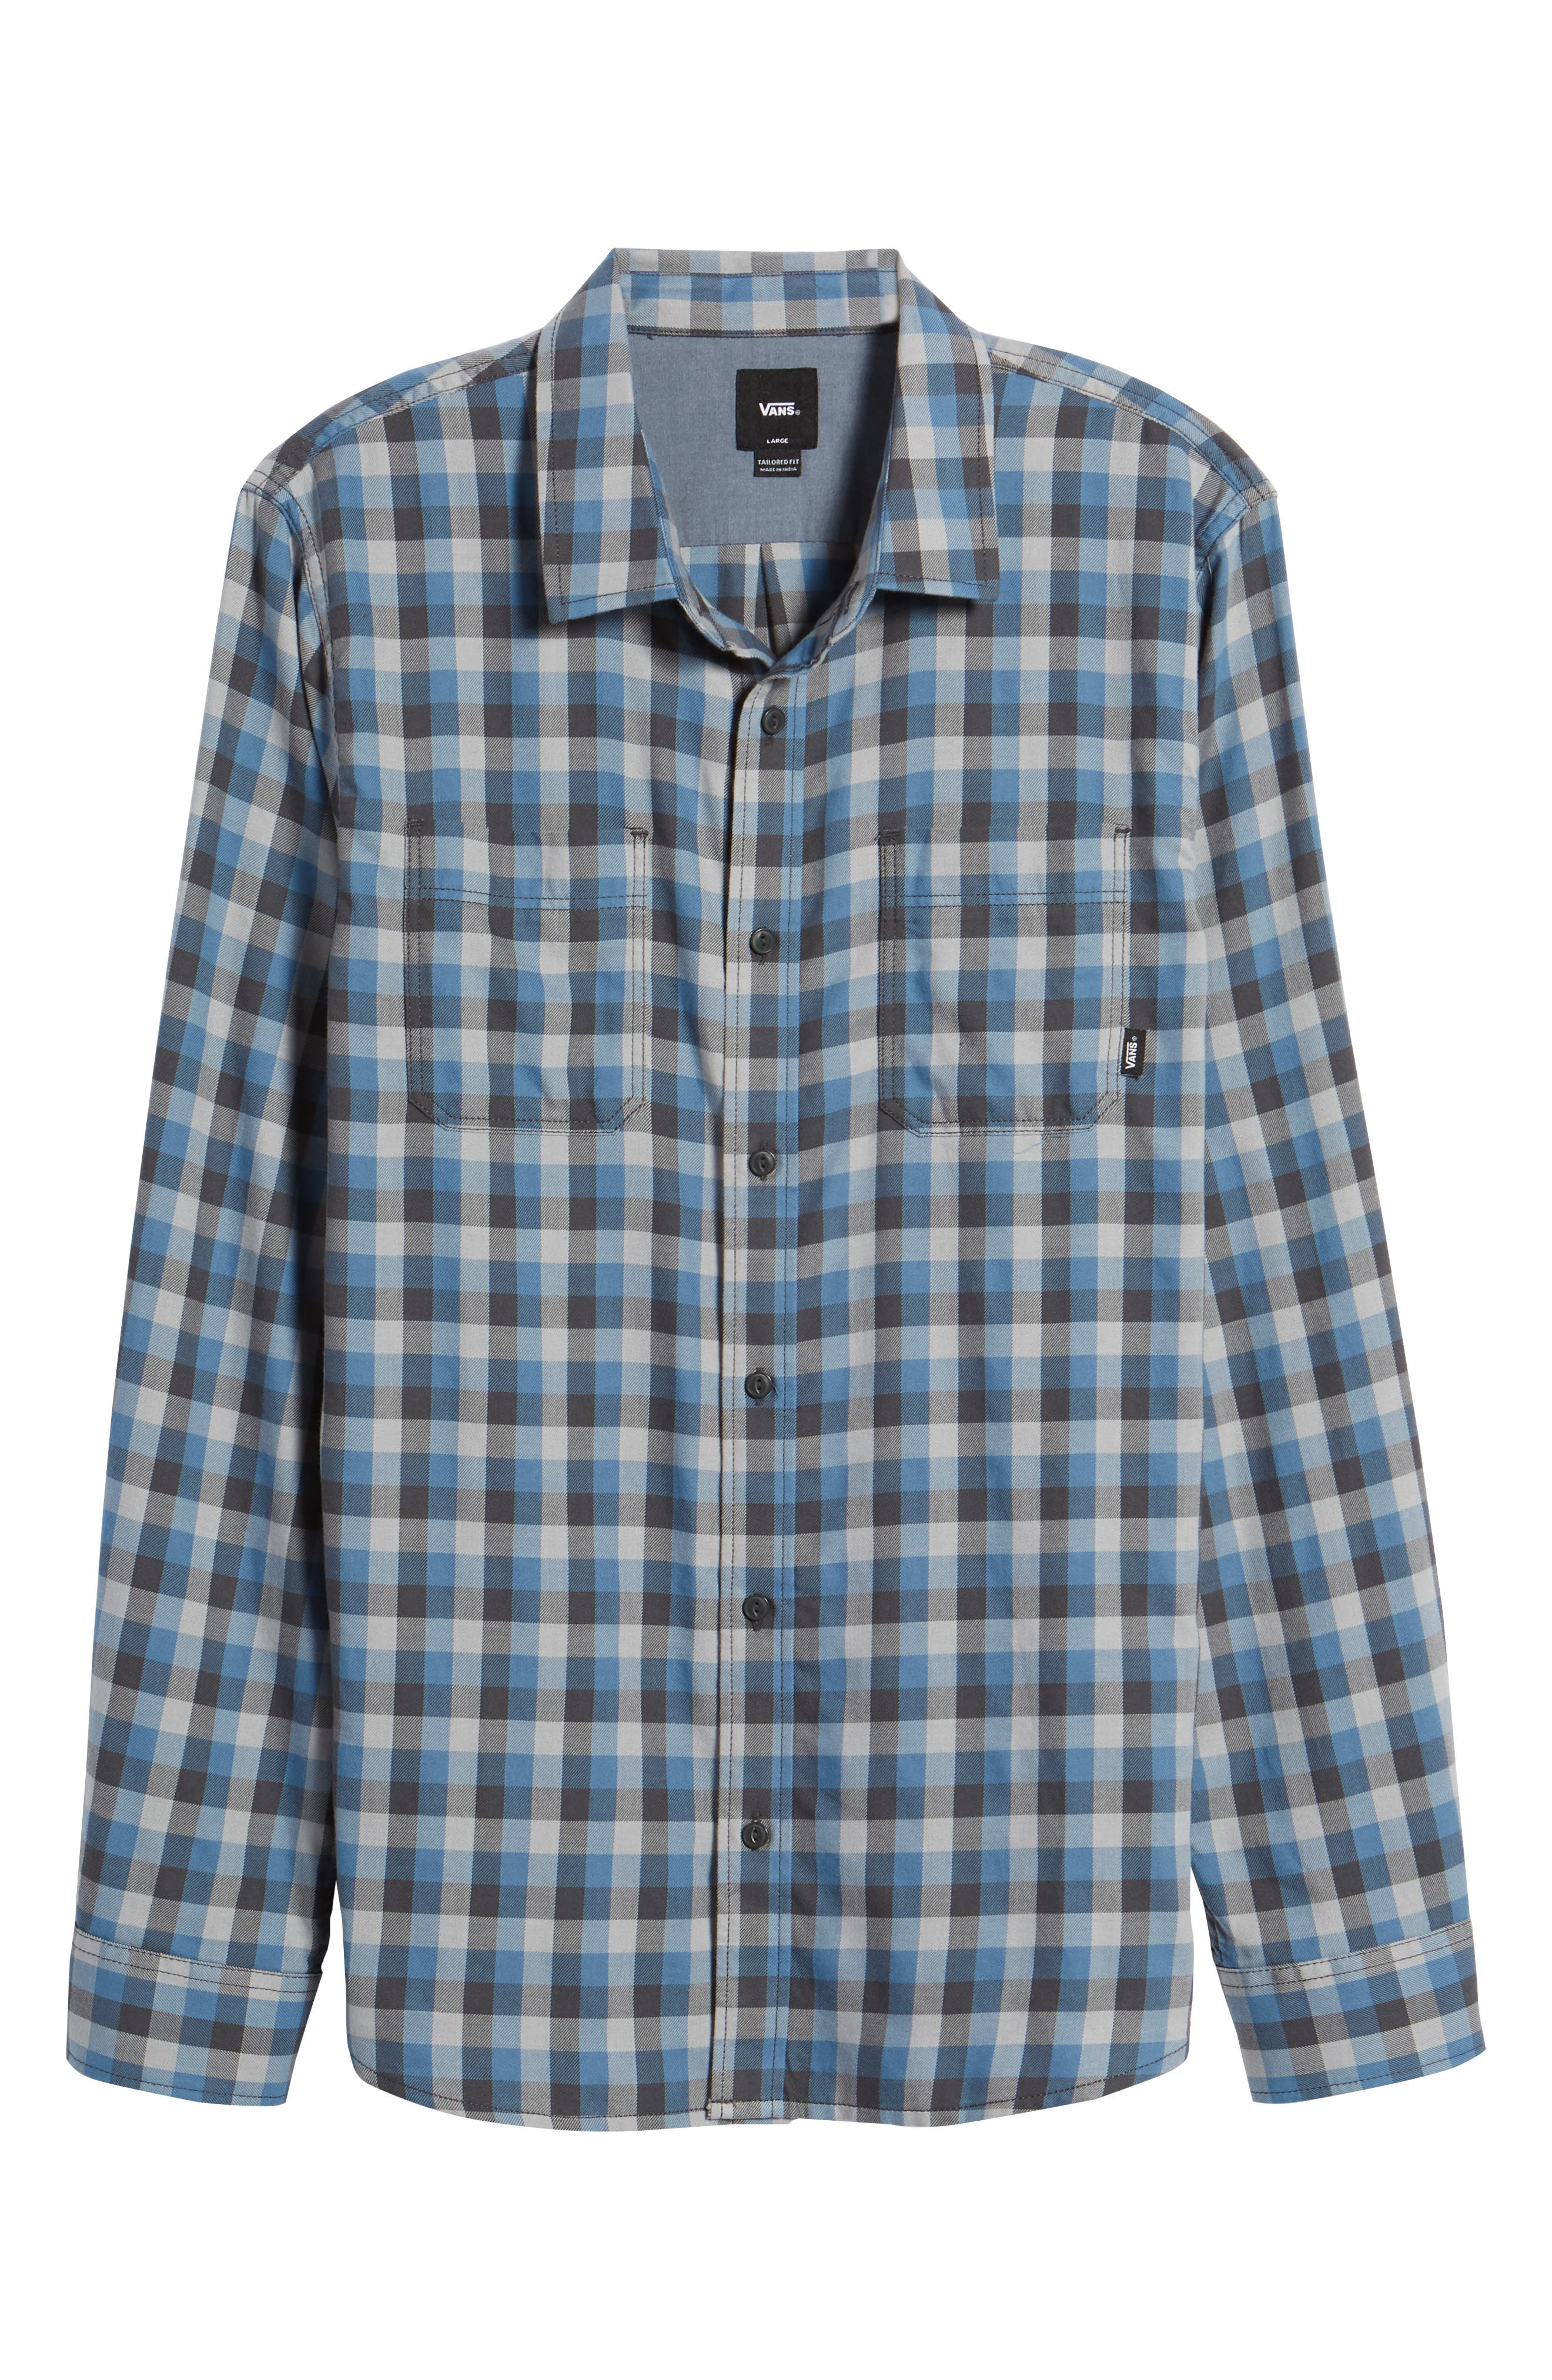 Alameda II Plaid Flannel Shirt,                             Alternate thumbnail 6, color,                             Asphalt/ Copen Blue